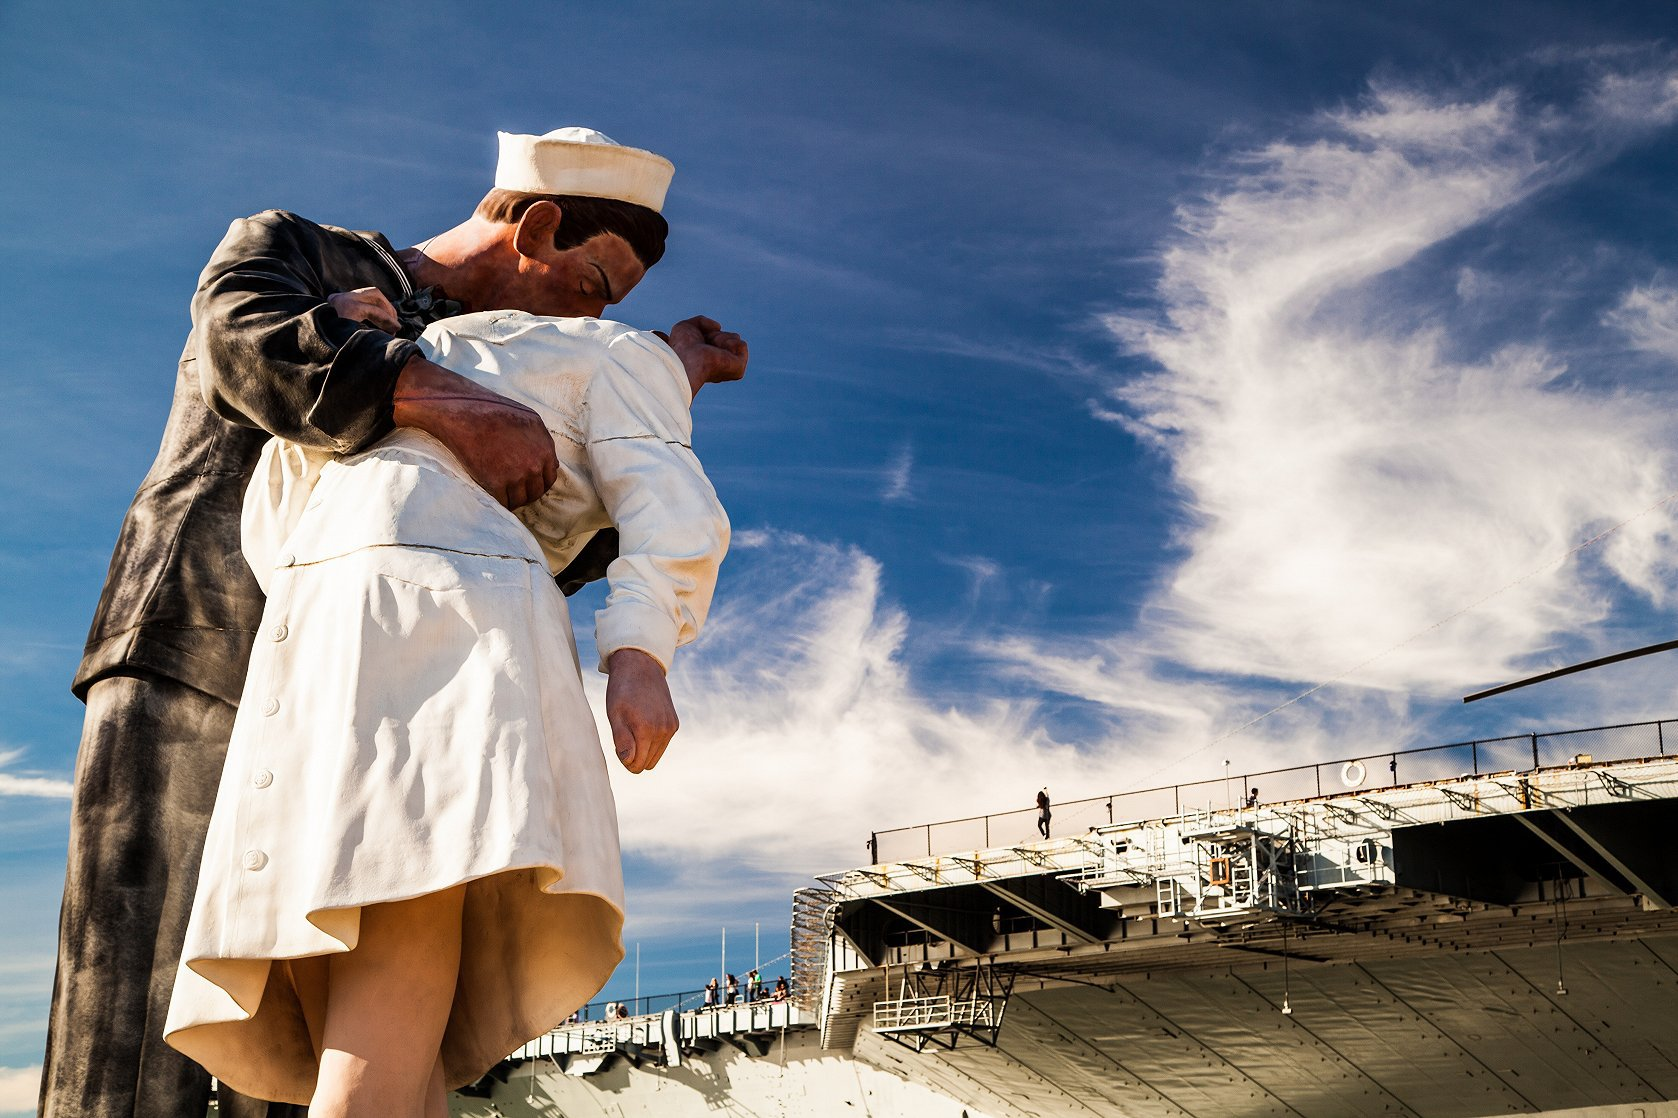 USS Midway Museum Admission Ticket